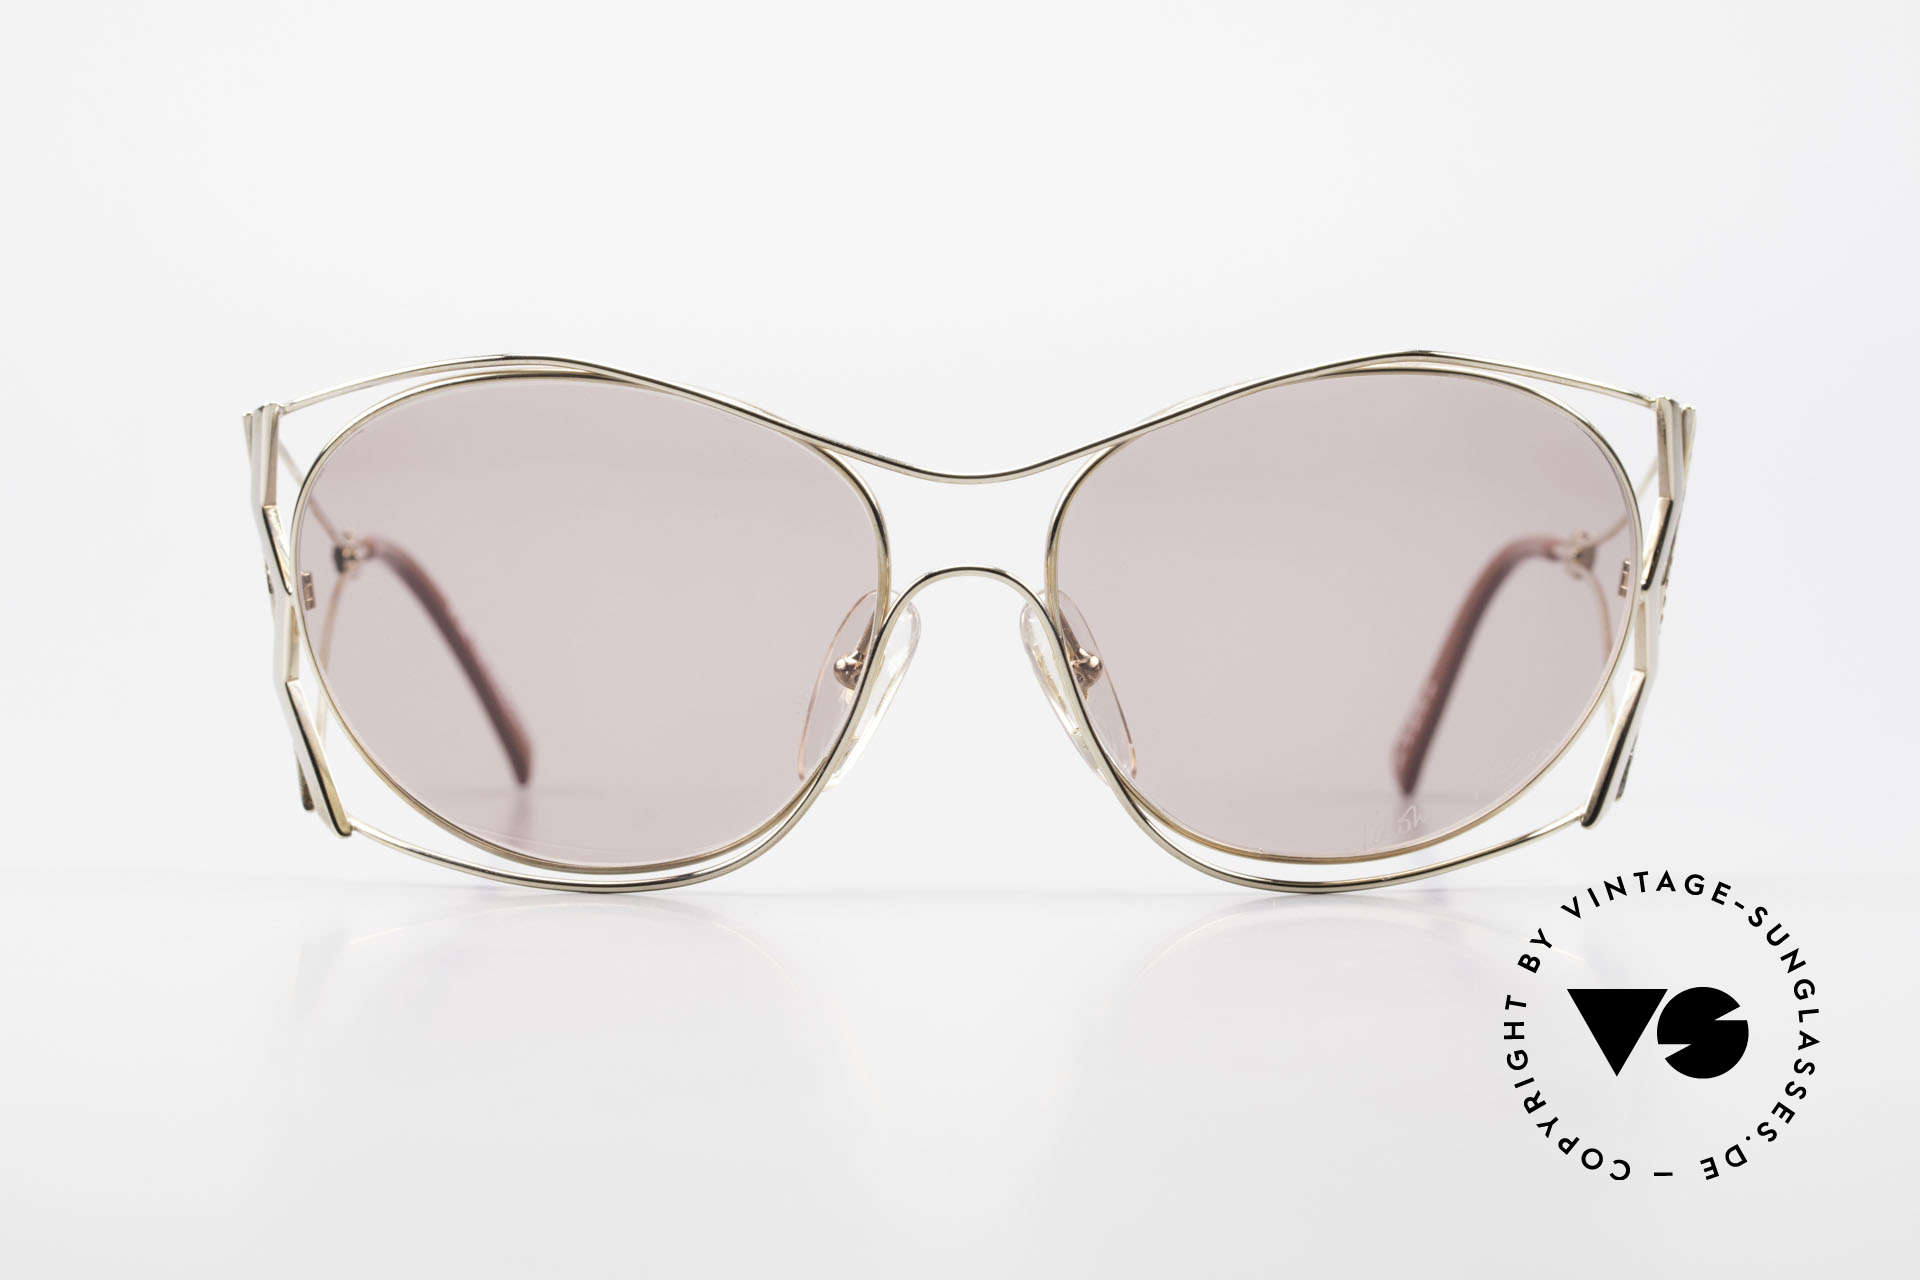 Paloma Picasso 3707 90's Sunglasses Rhinestones, playful and elegant at the same time; just glamorous, Made for Women